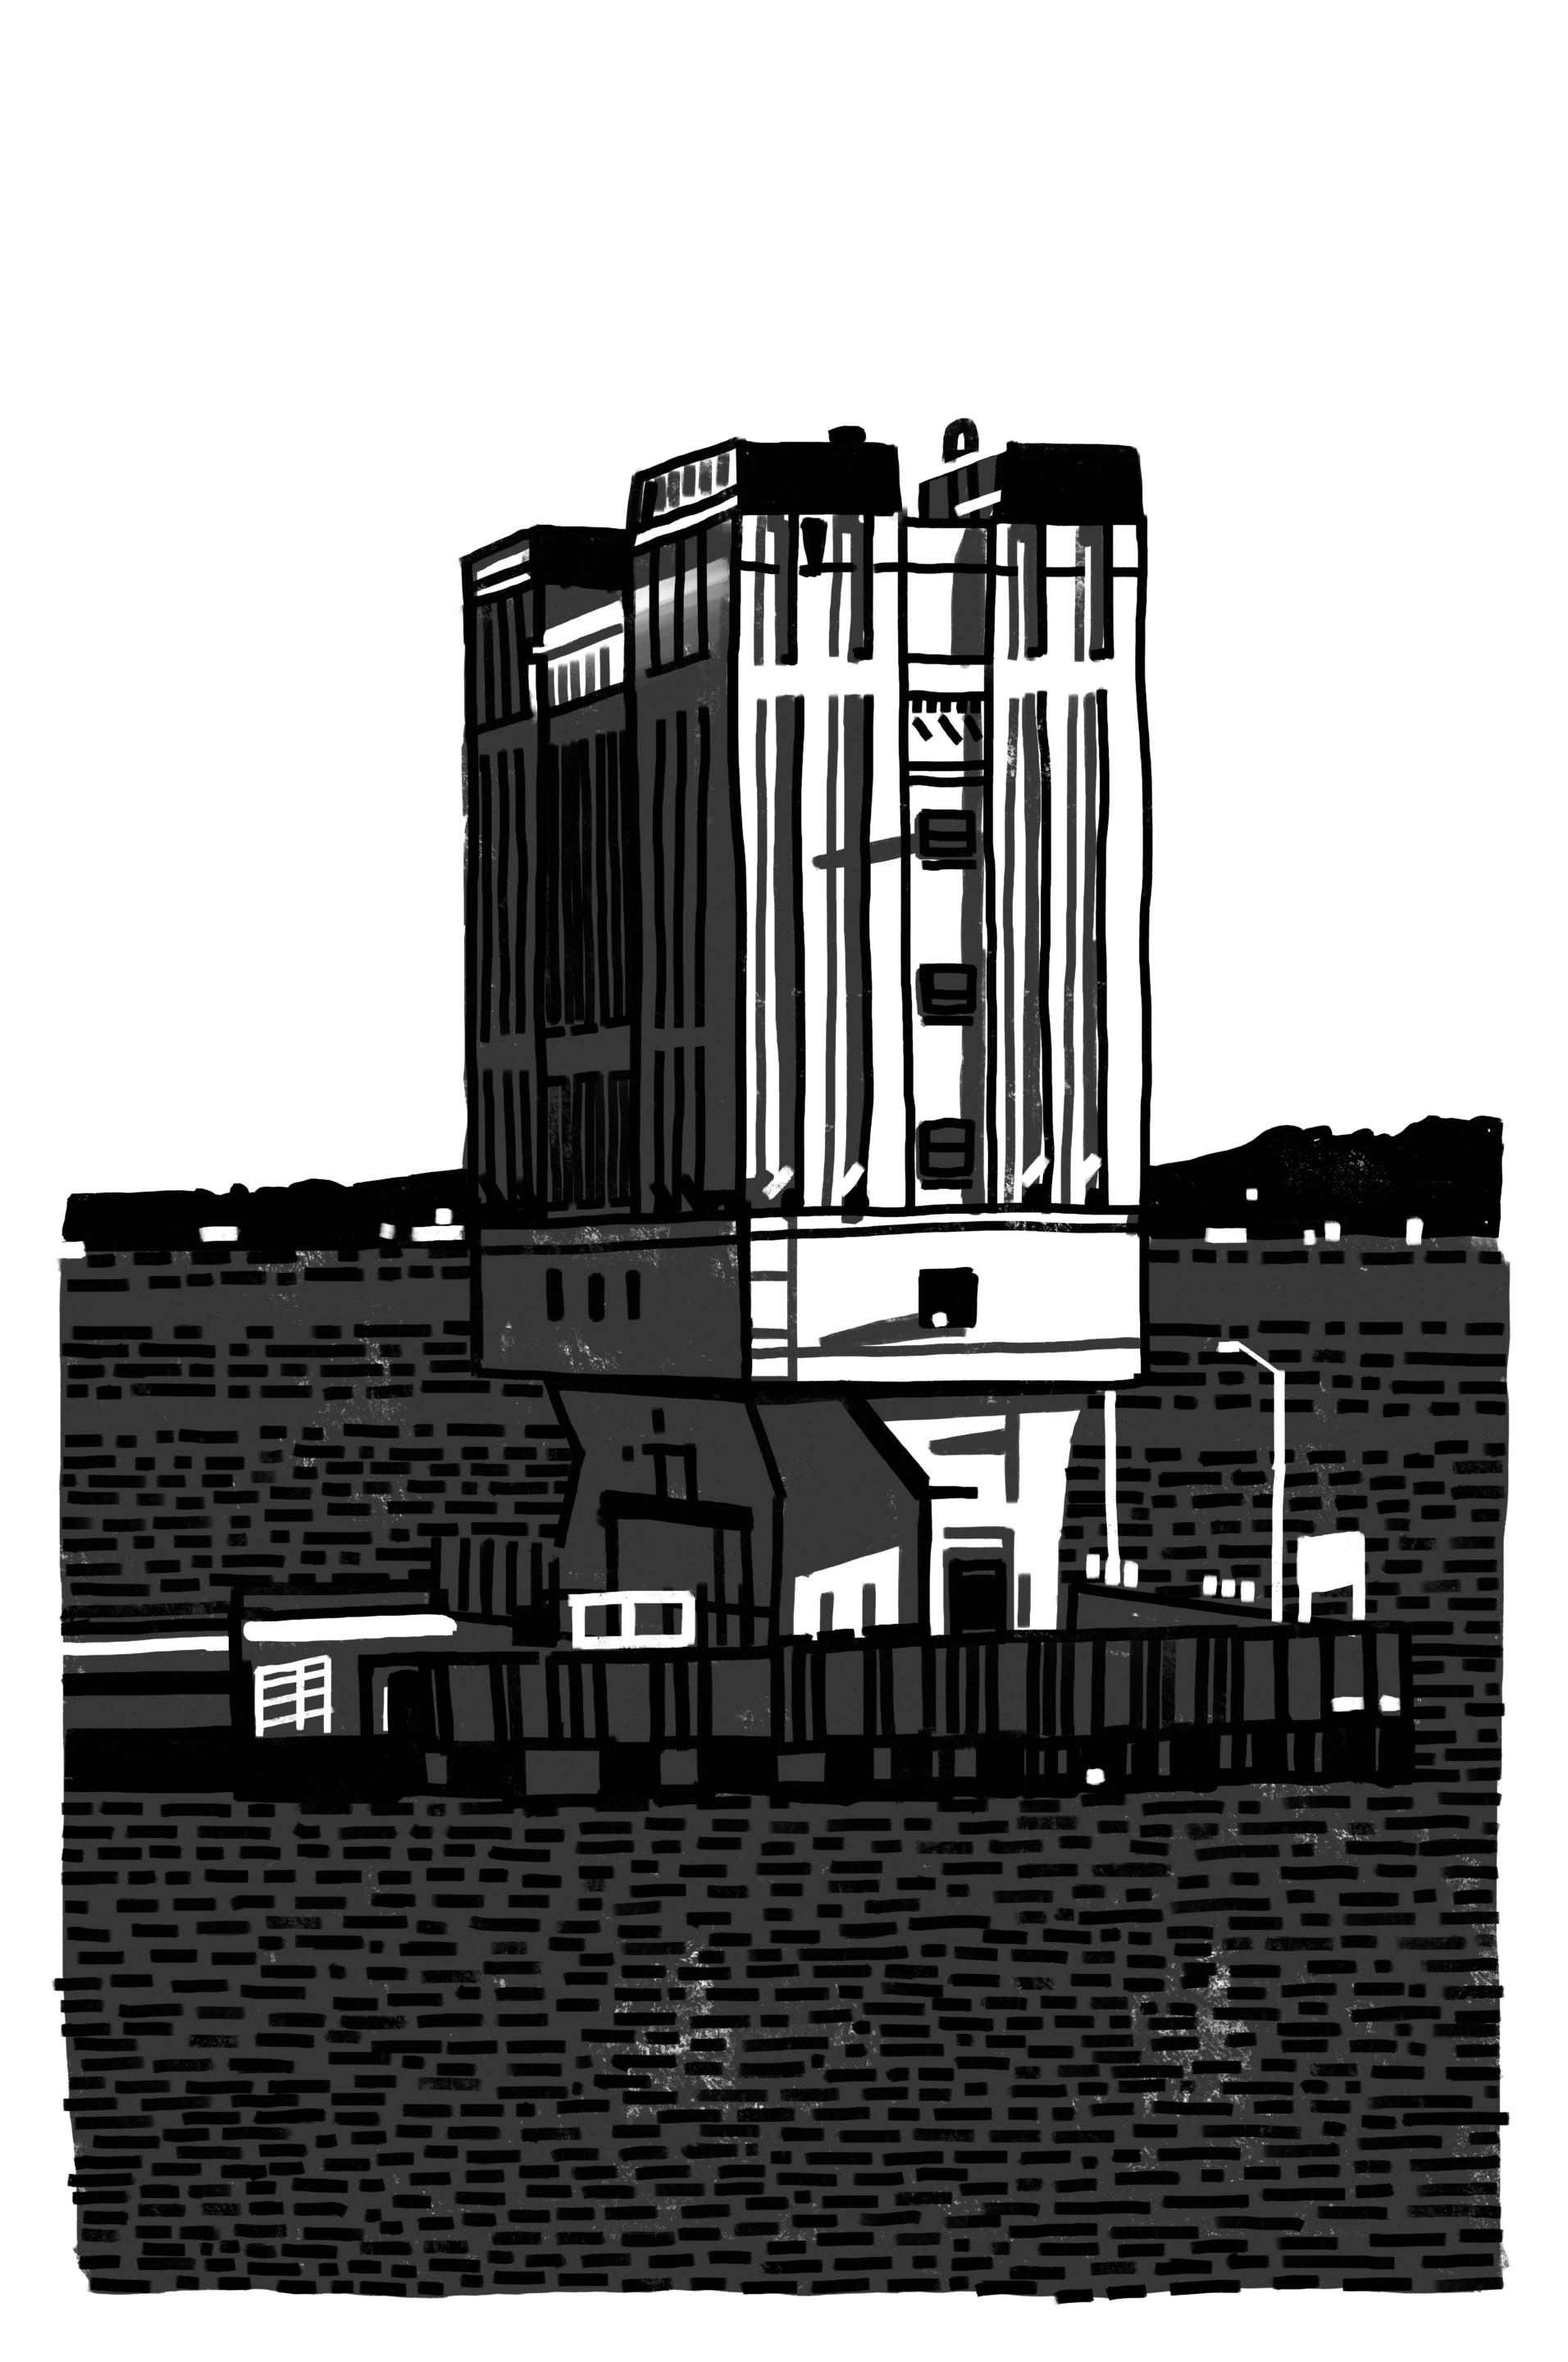 black and white diagram of a tall brutalist building over an exhaust